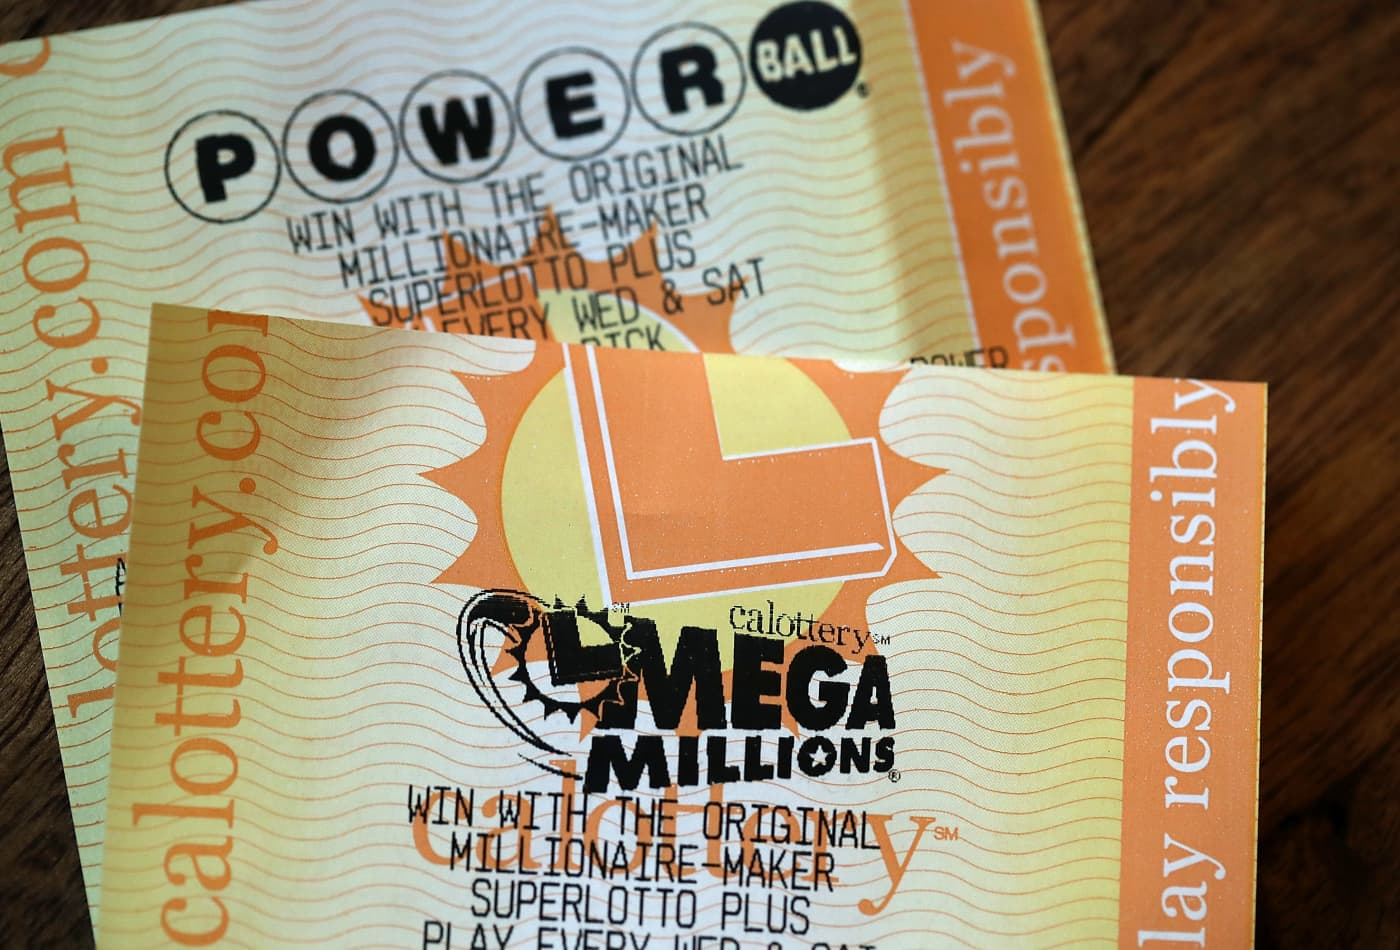 Things you could buy if you win the billion-dollar Mega Millions